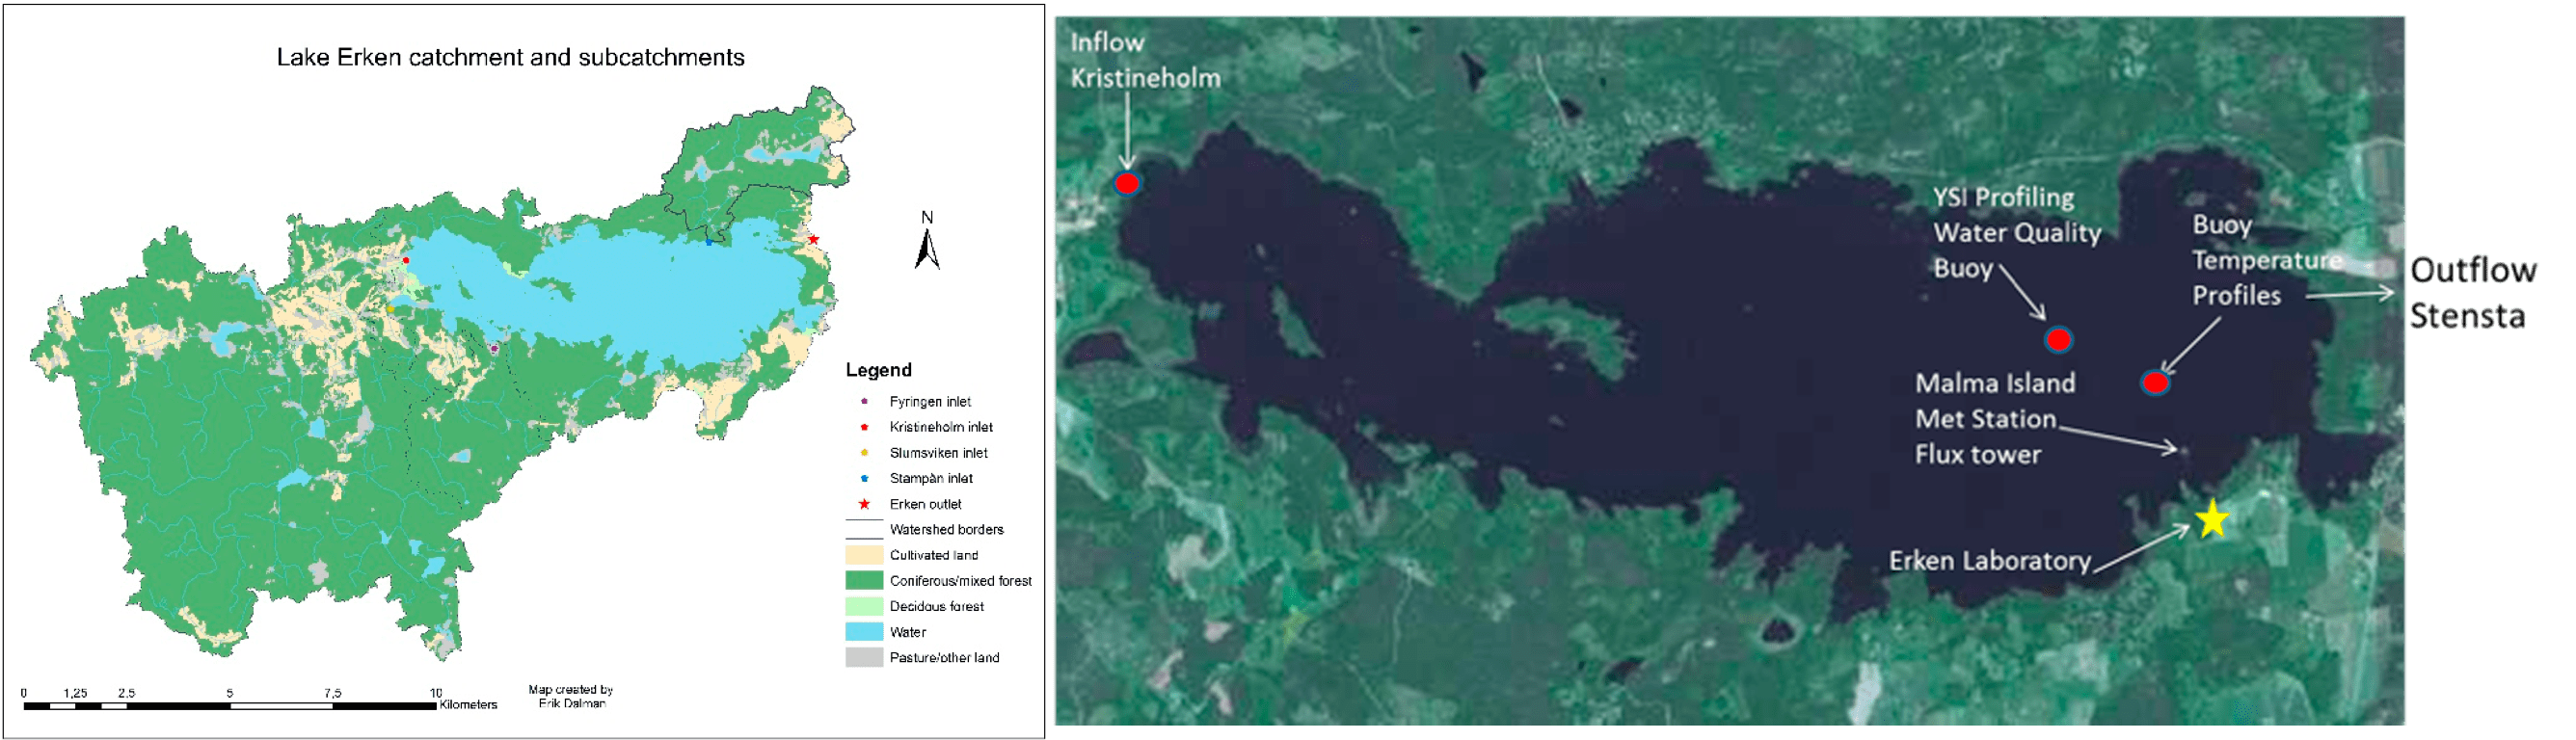 Figure 1 - Maps Lake Erken catchment and subcatchments